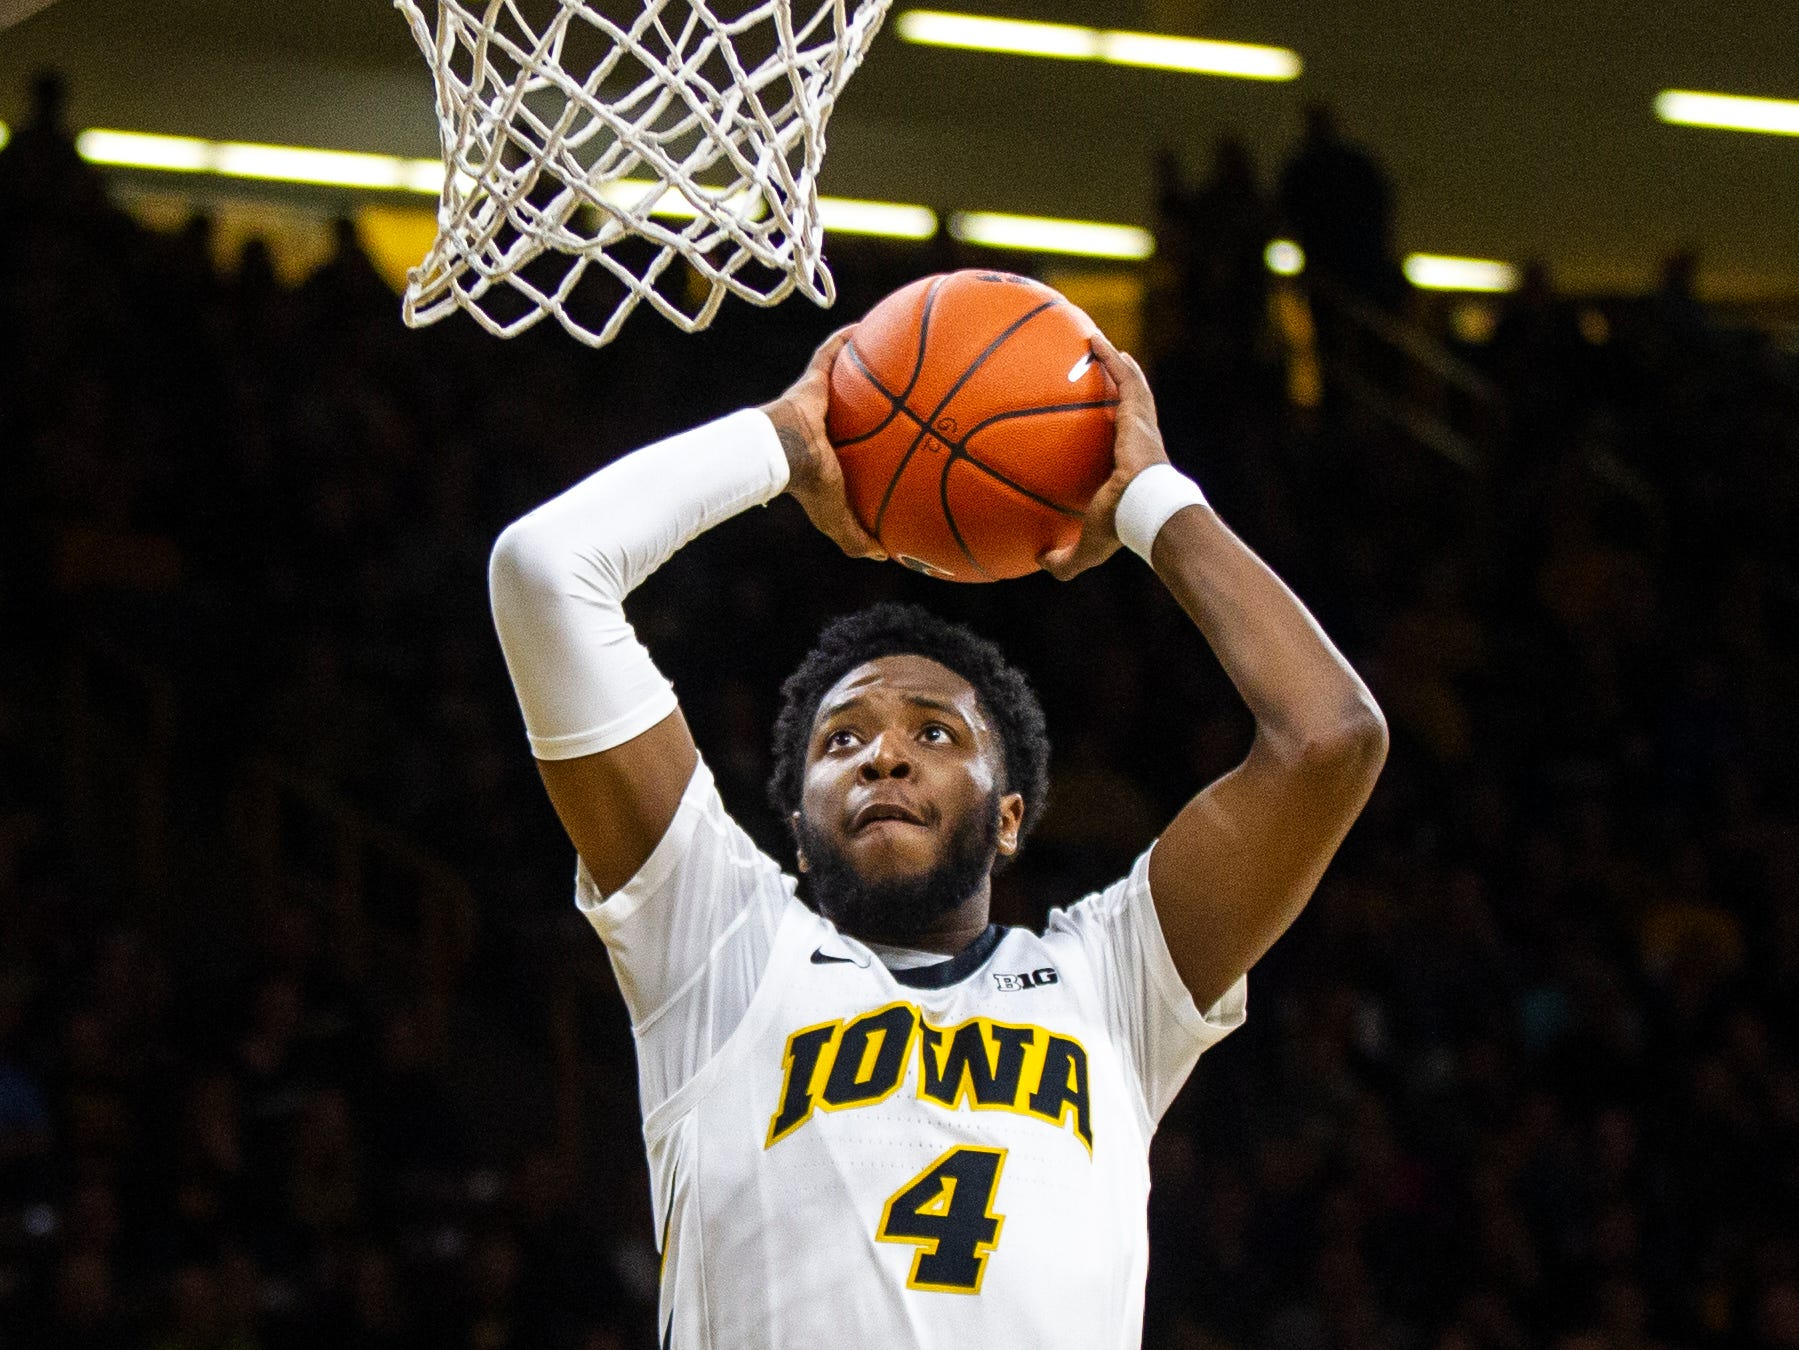 Iowa guard Isaiah Moss (4) dunks during an NCAA men's basketball game on Wednesday, Nov. 21, 2018, at Carver-Hawkeye Arena in Iowa City.